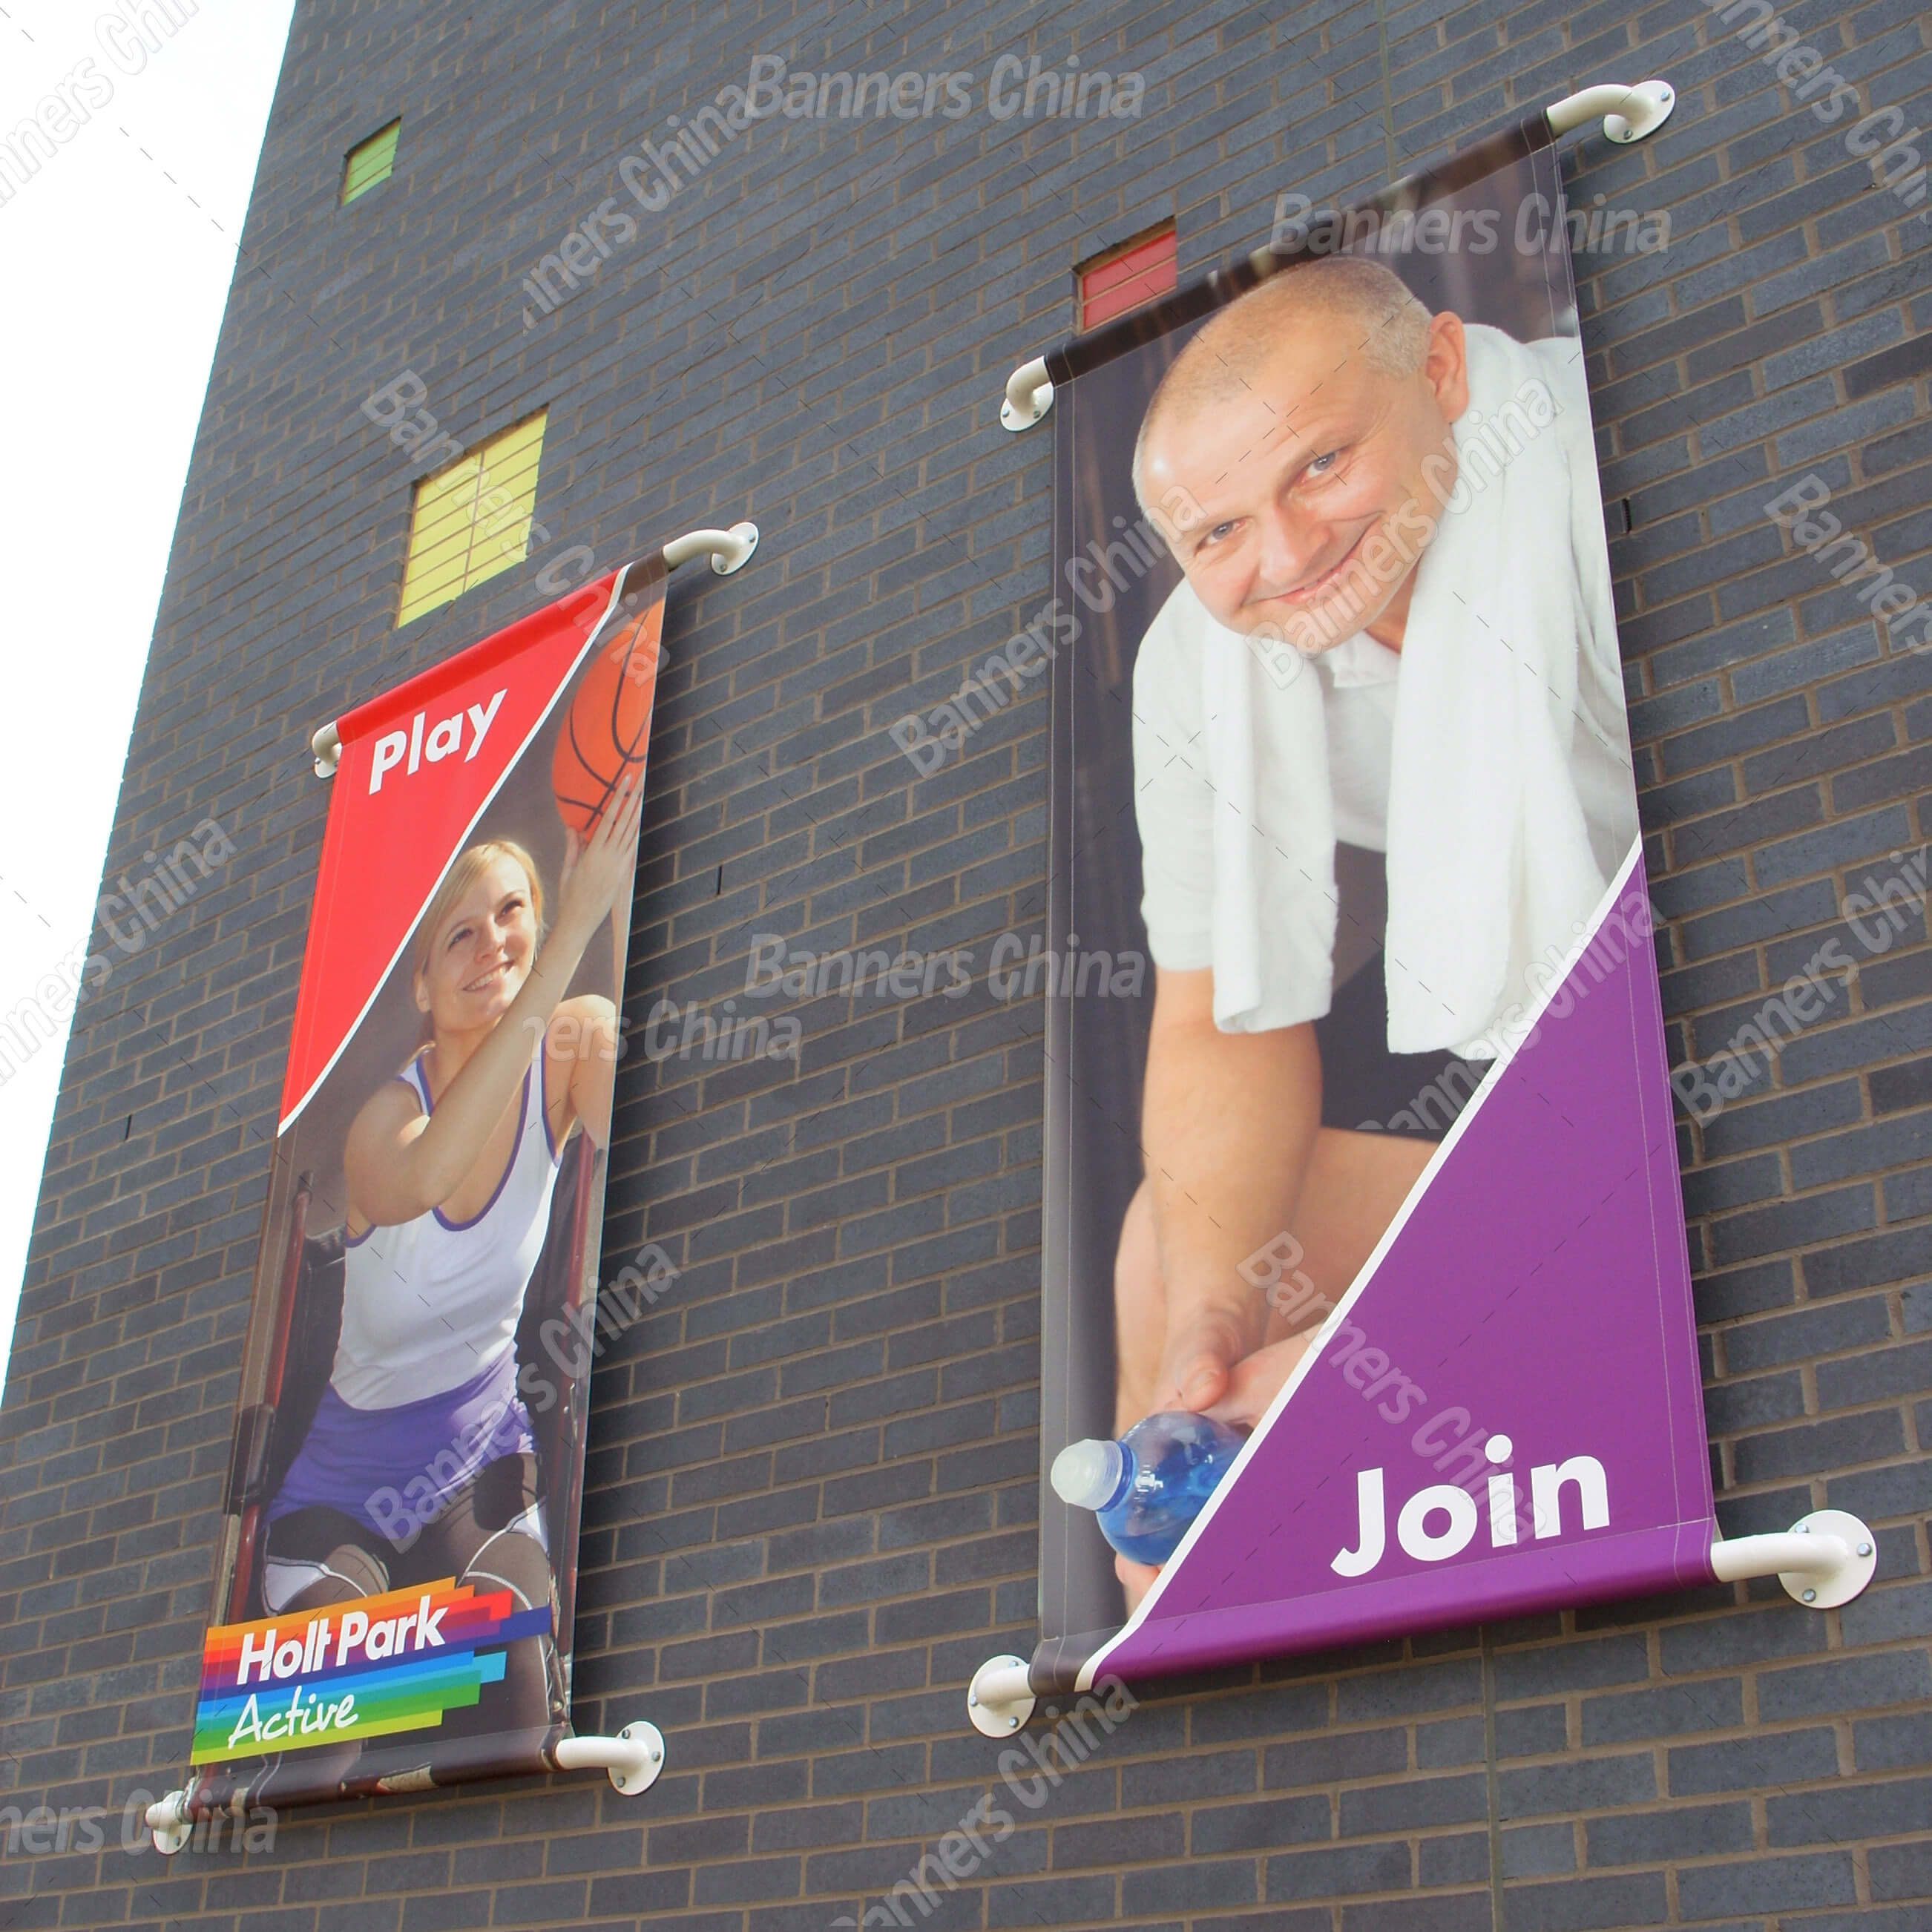 Custom Cheap Vinyl Banners Printing From China